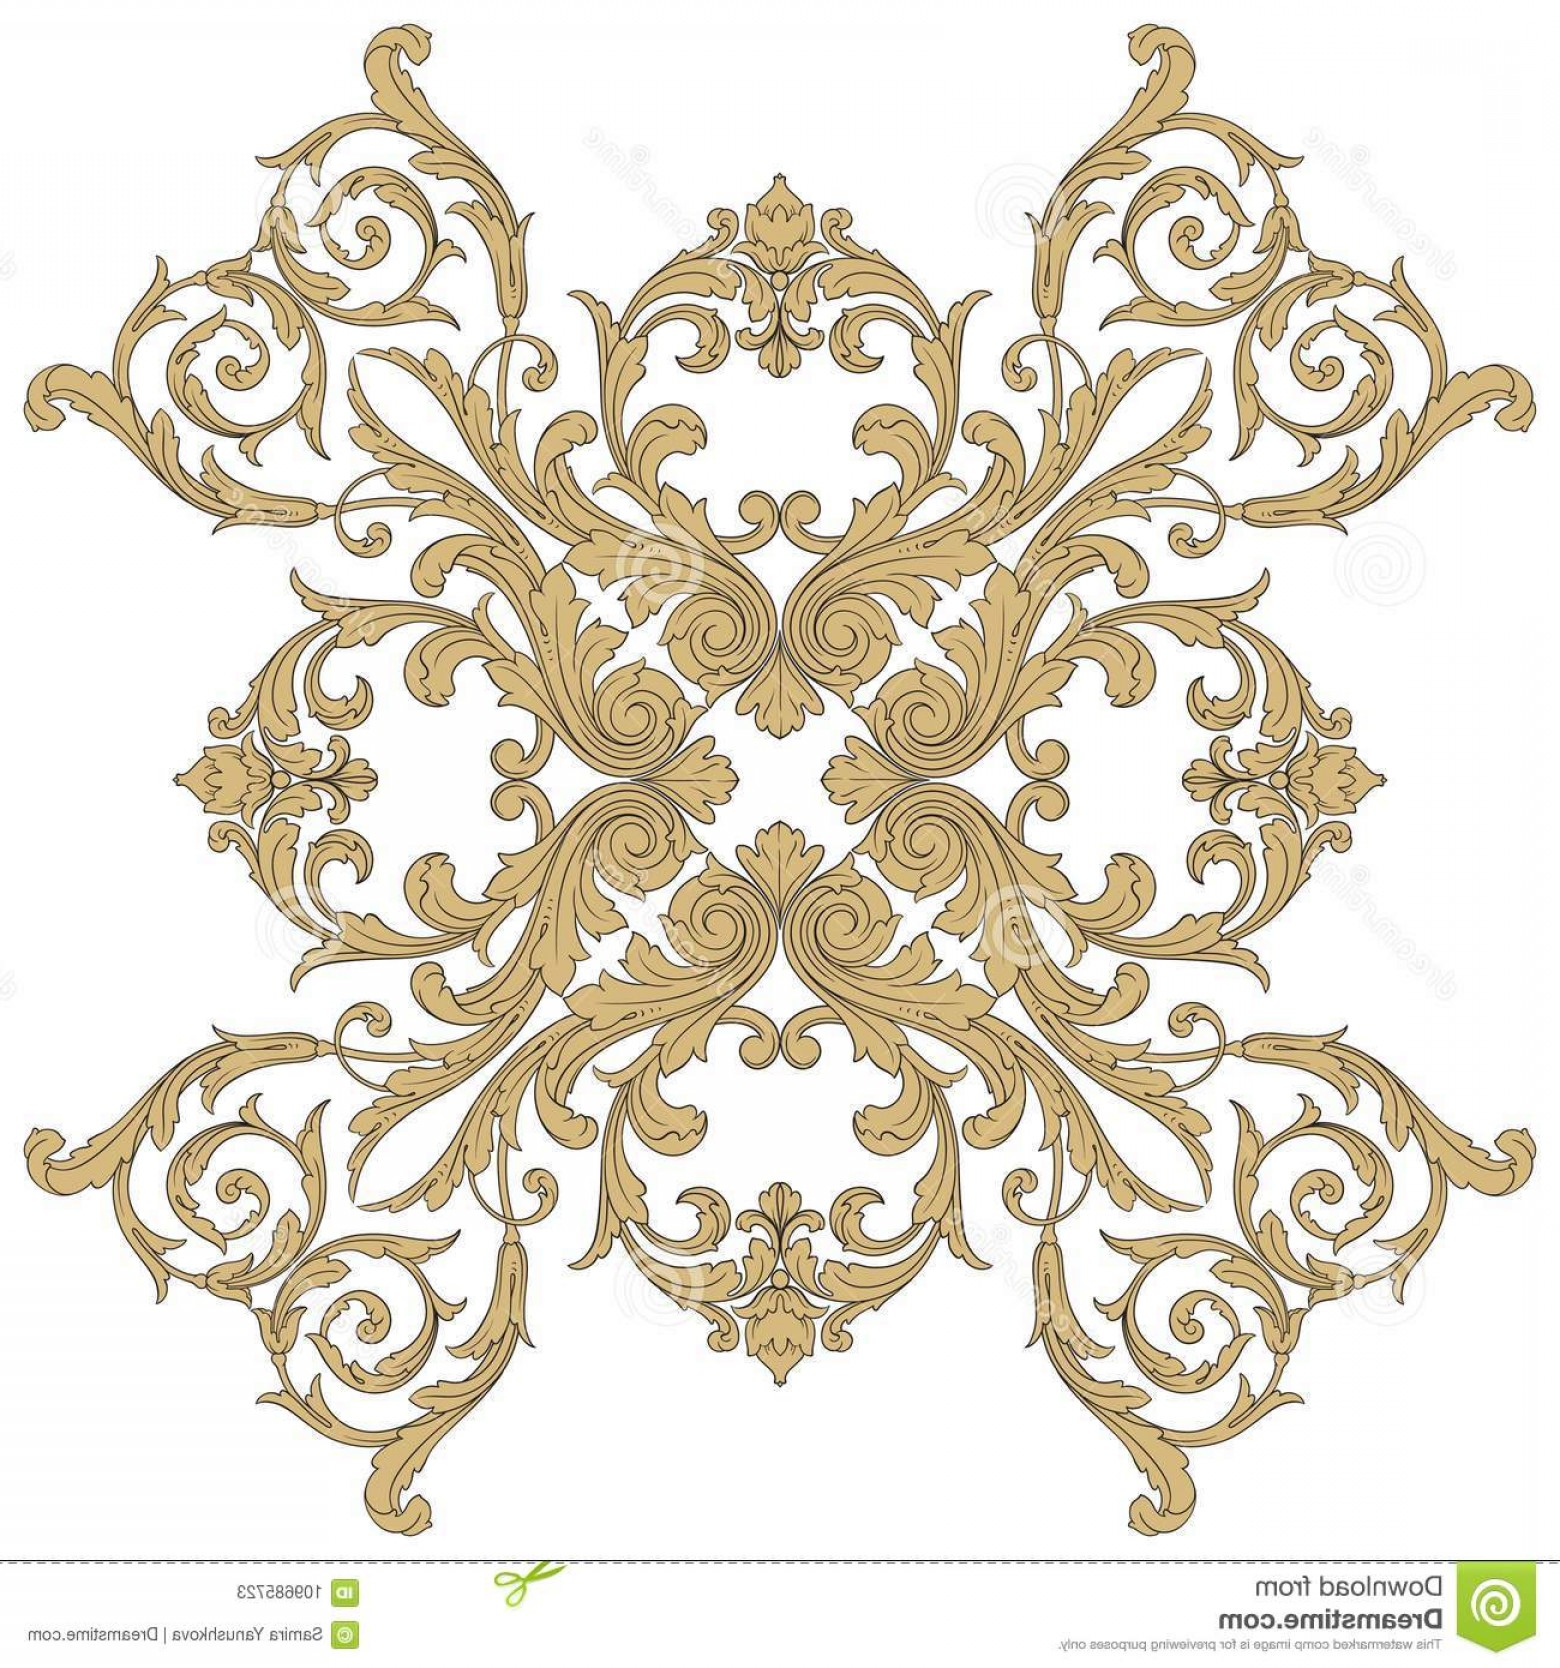 Victorian Motif Vector: Vector Baroque Ornament Victorian Style Vintage Frame Scroll Engraving Border Floral Retro Pattern Antique Acanthus Foliage Image